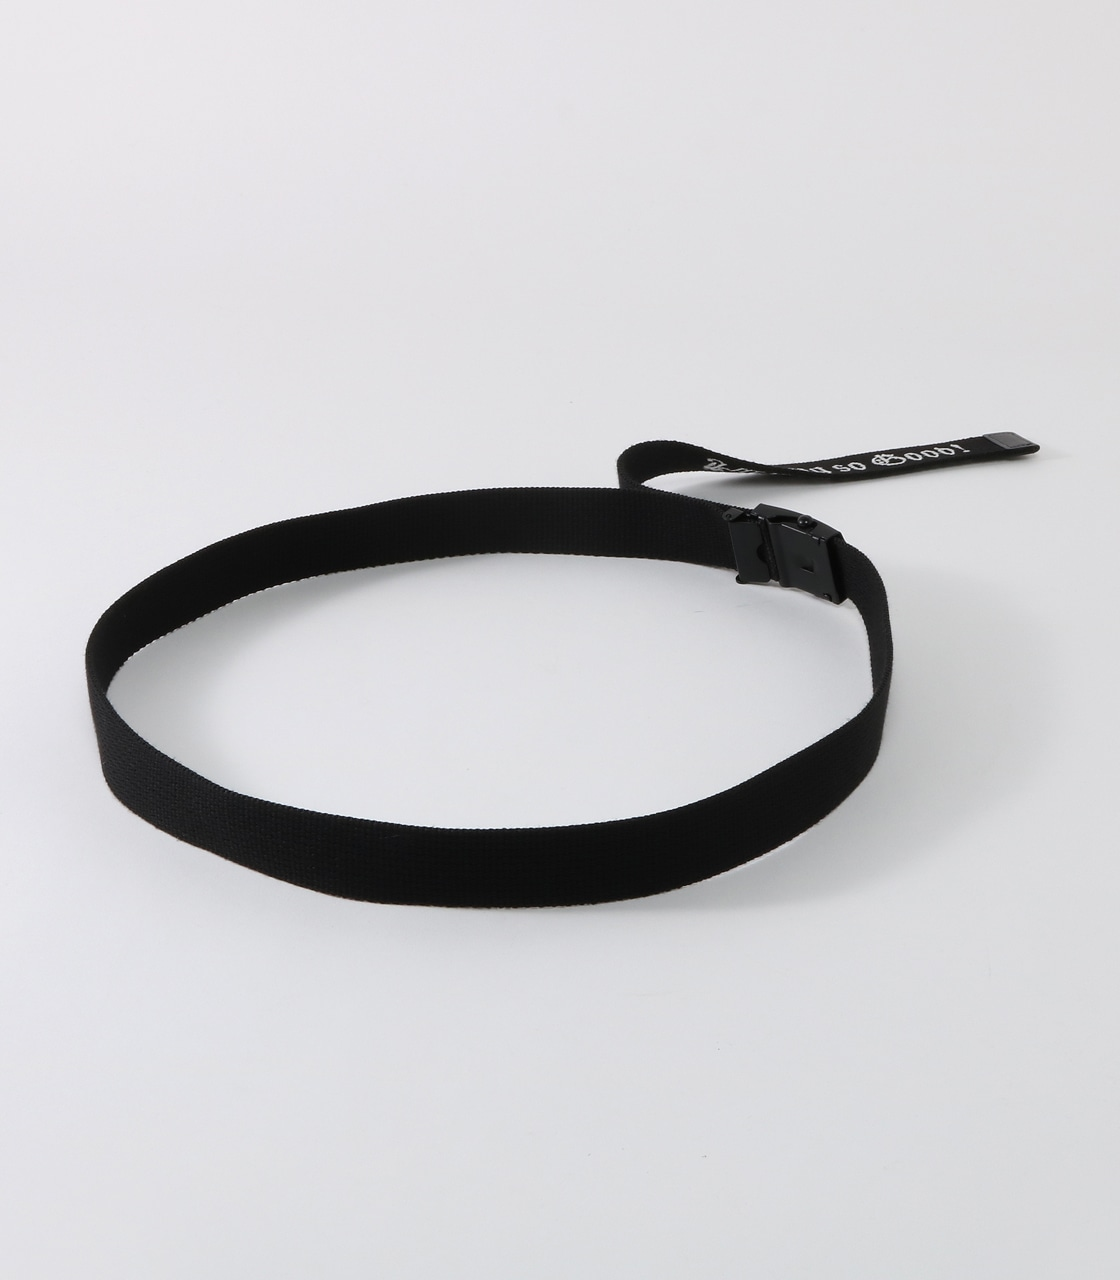 【AZUL BY MOUSSY】so good ロングテープベルト 詳細画像 BLK 2